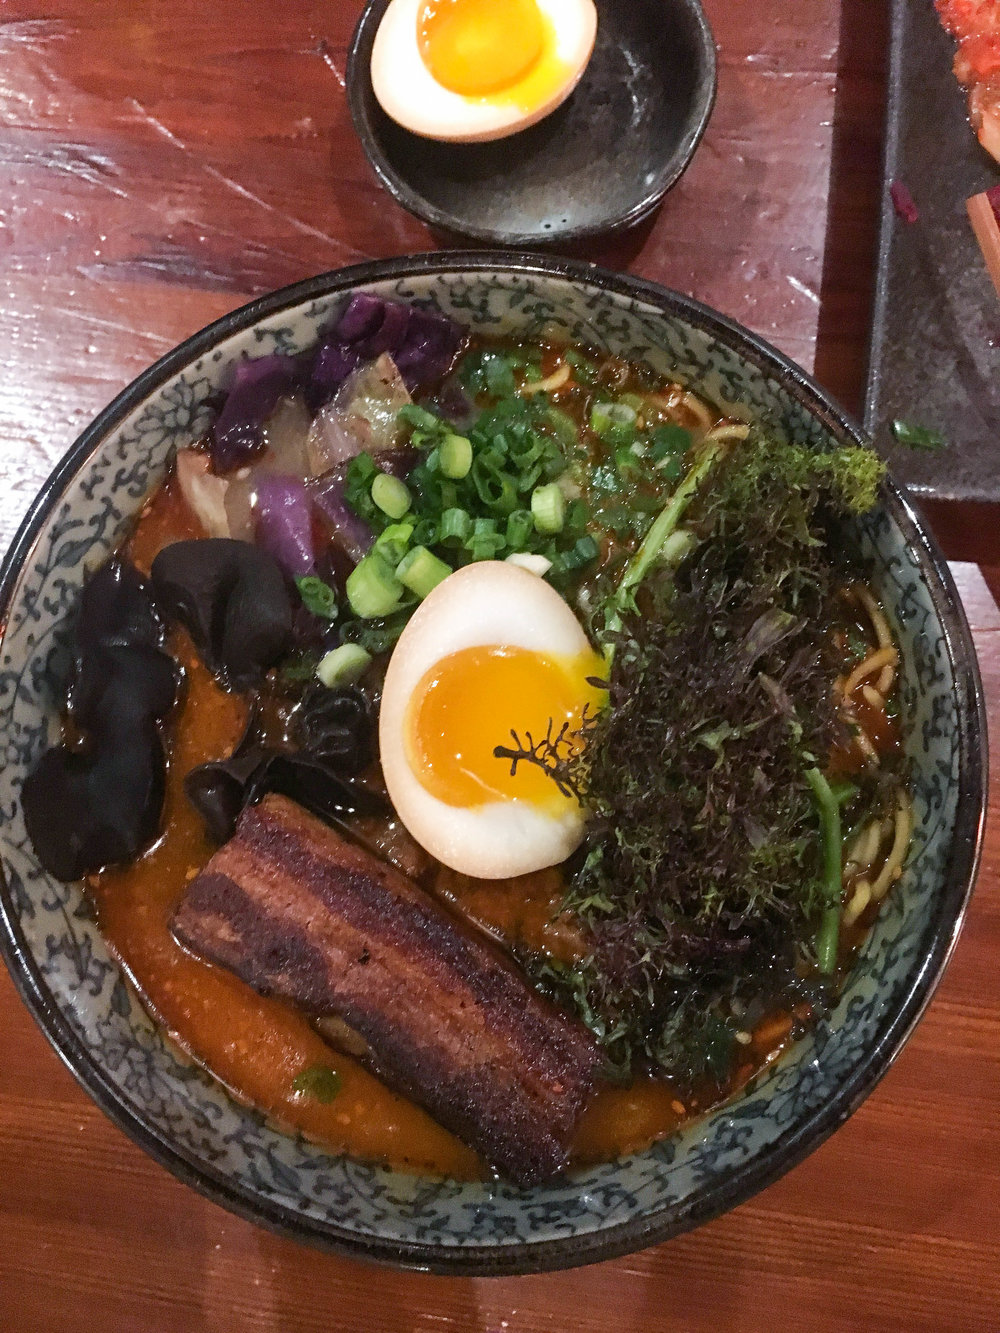 Scott's spicy pork belly ramen